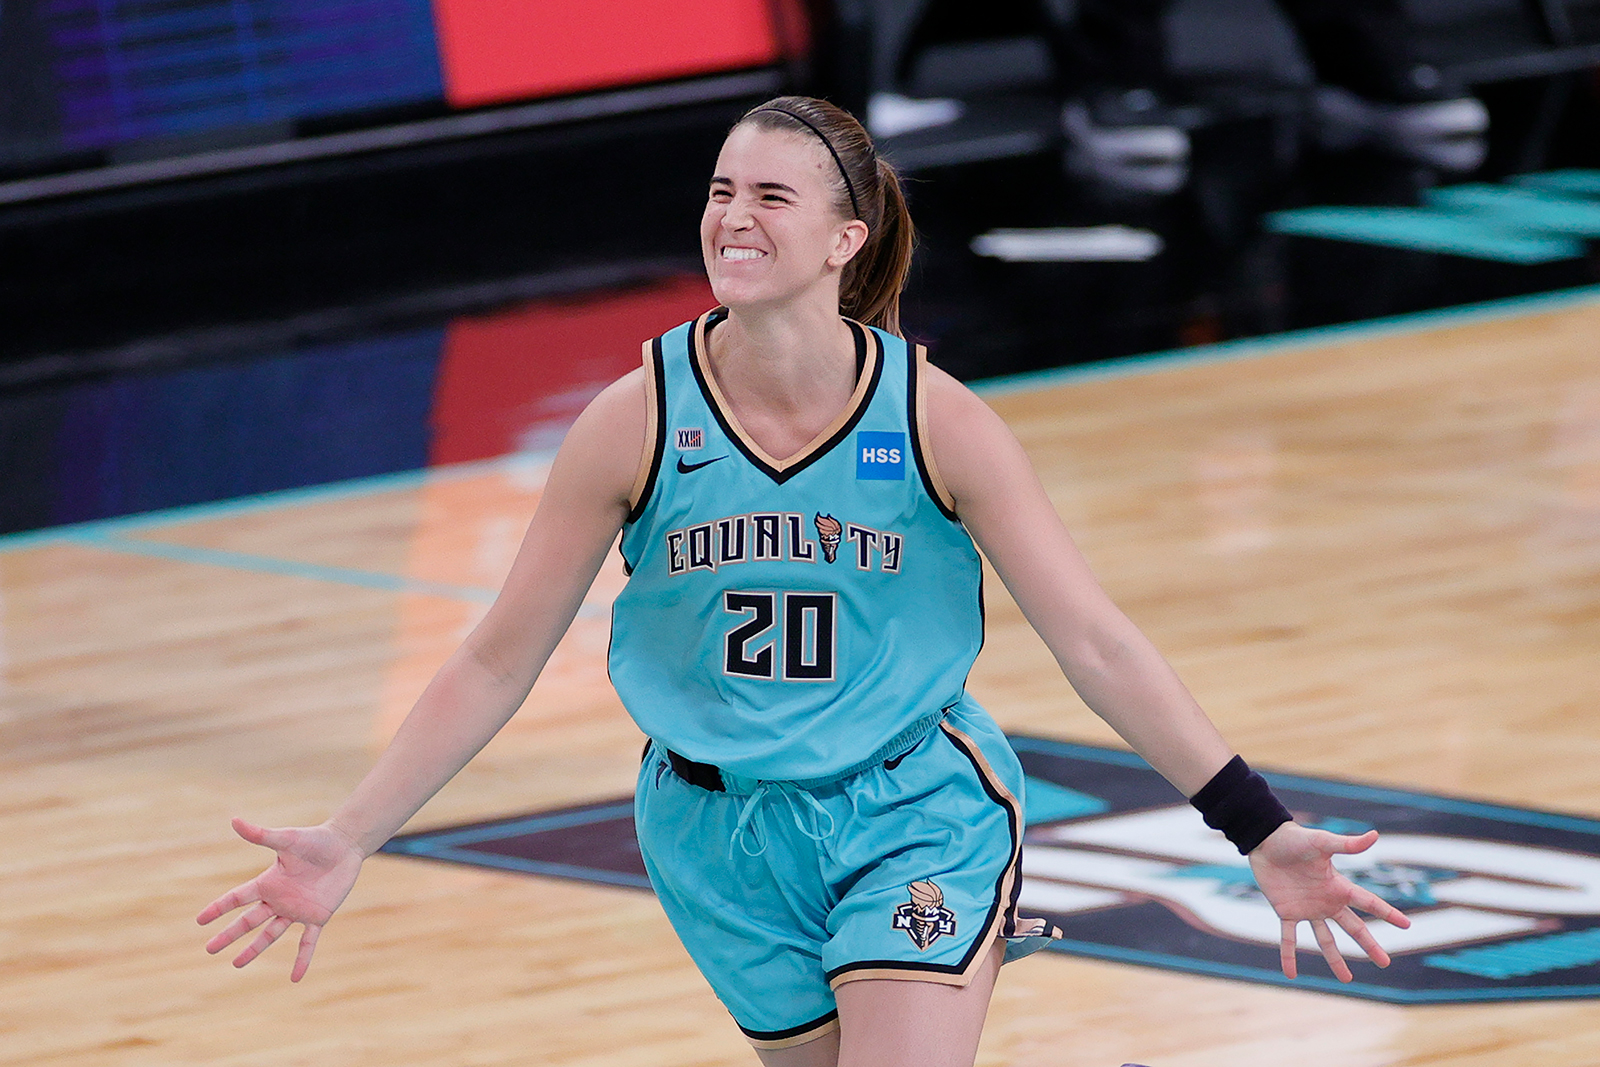 Sabrina Ionescu honors Kobe Bryant, hits game-winning 3 to start the WNBA season